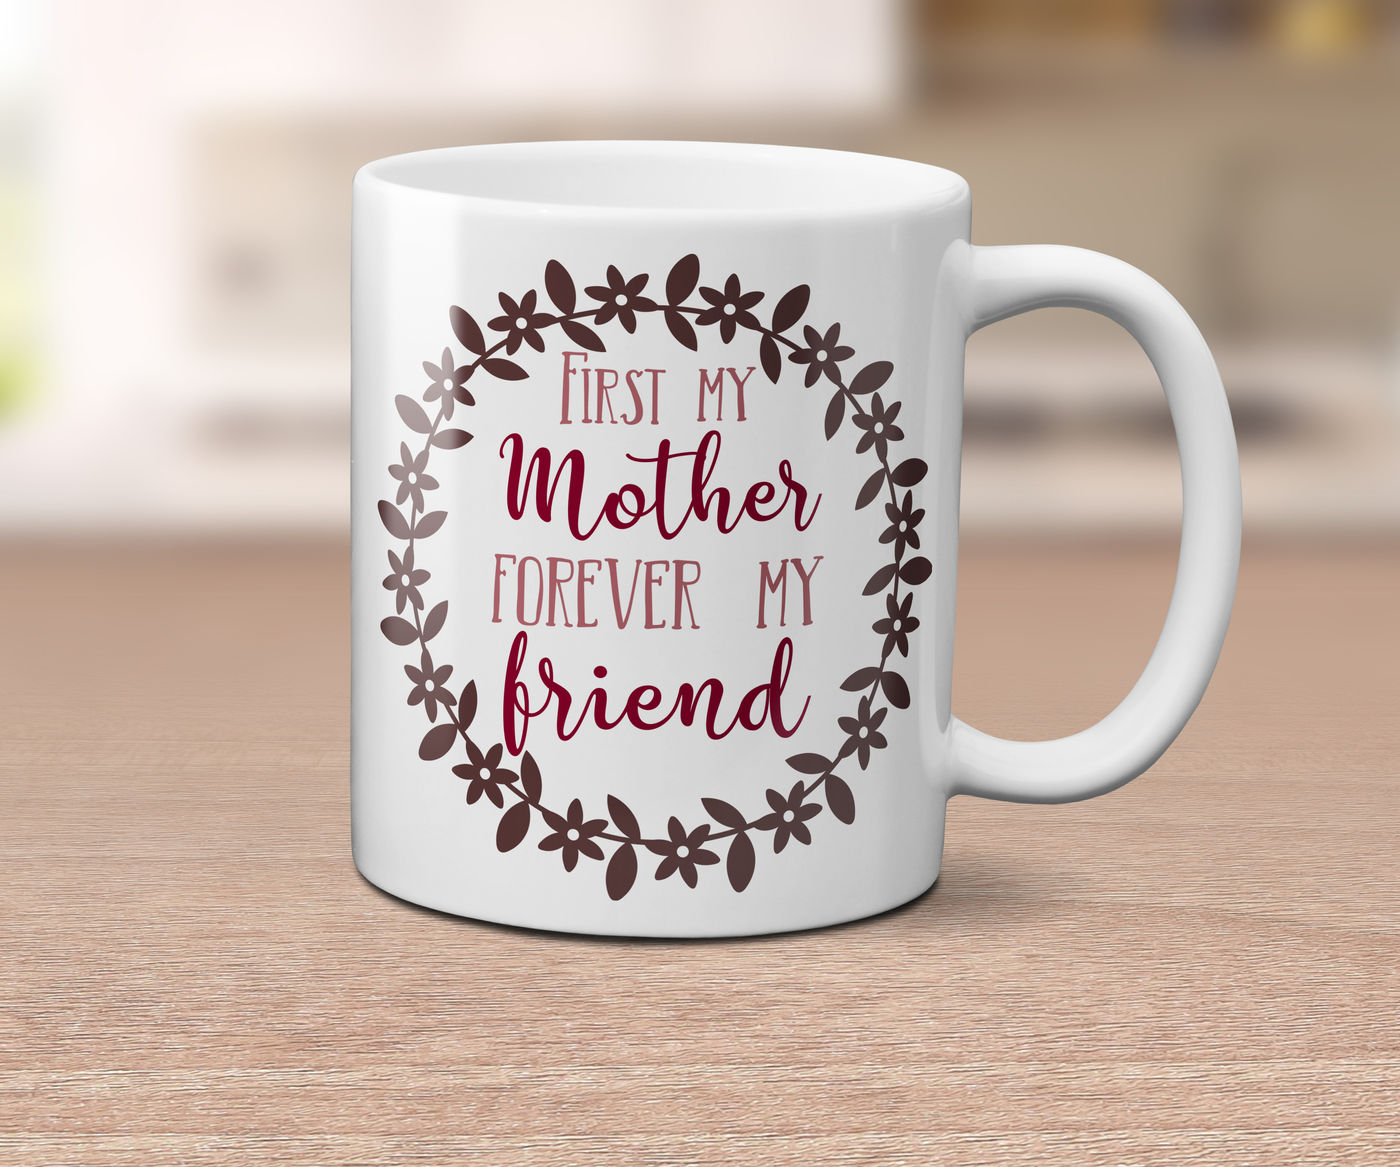 First My Mother Forever My Friend Svg Dxf Eps Png By Esi Designs Thehungryjpeg Com